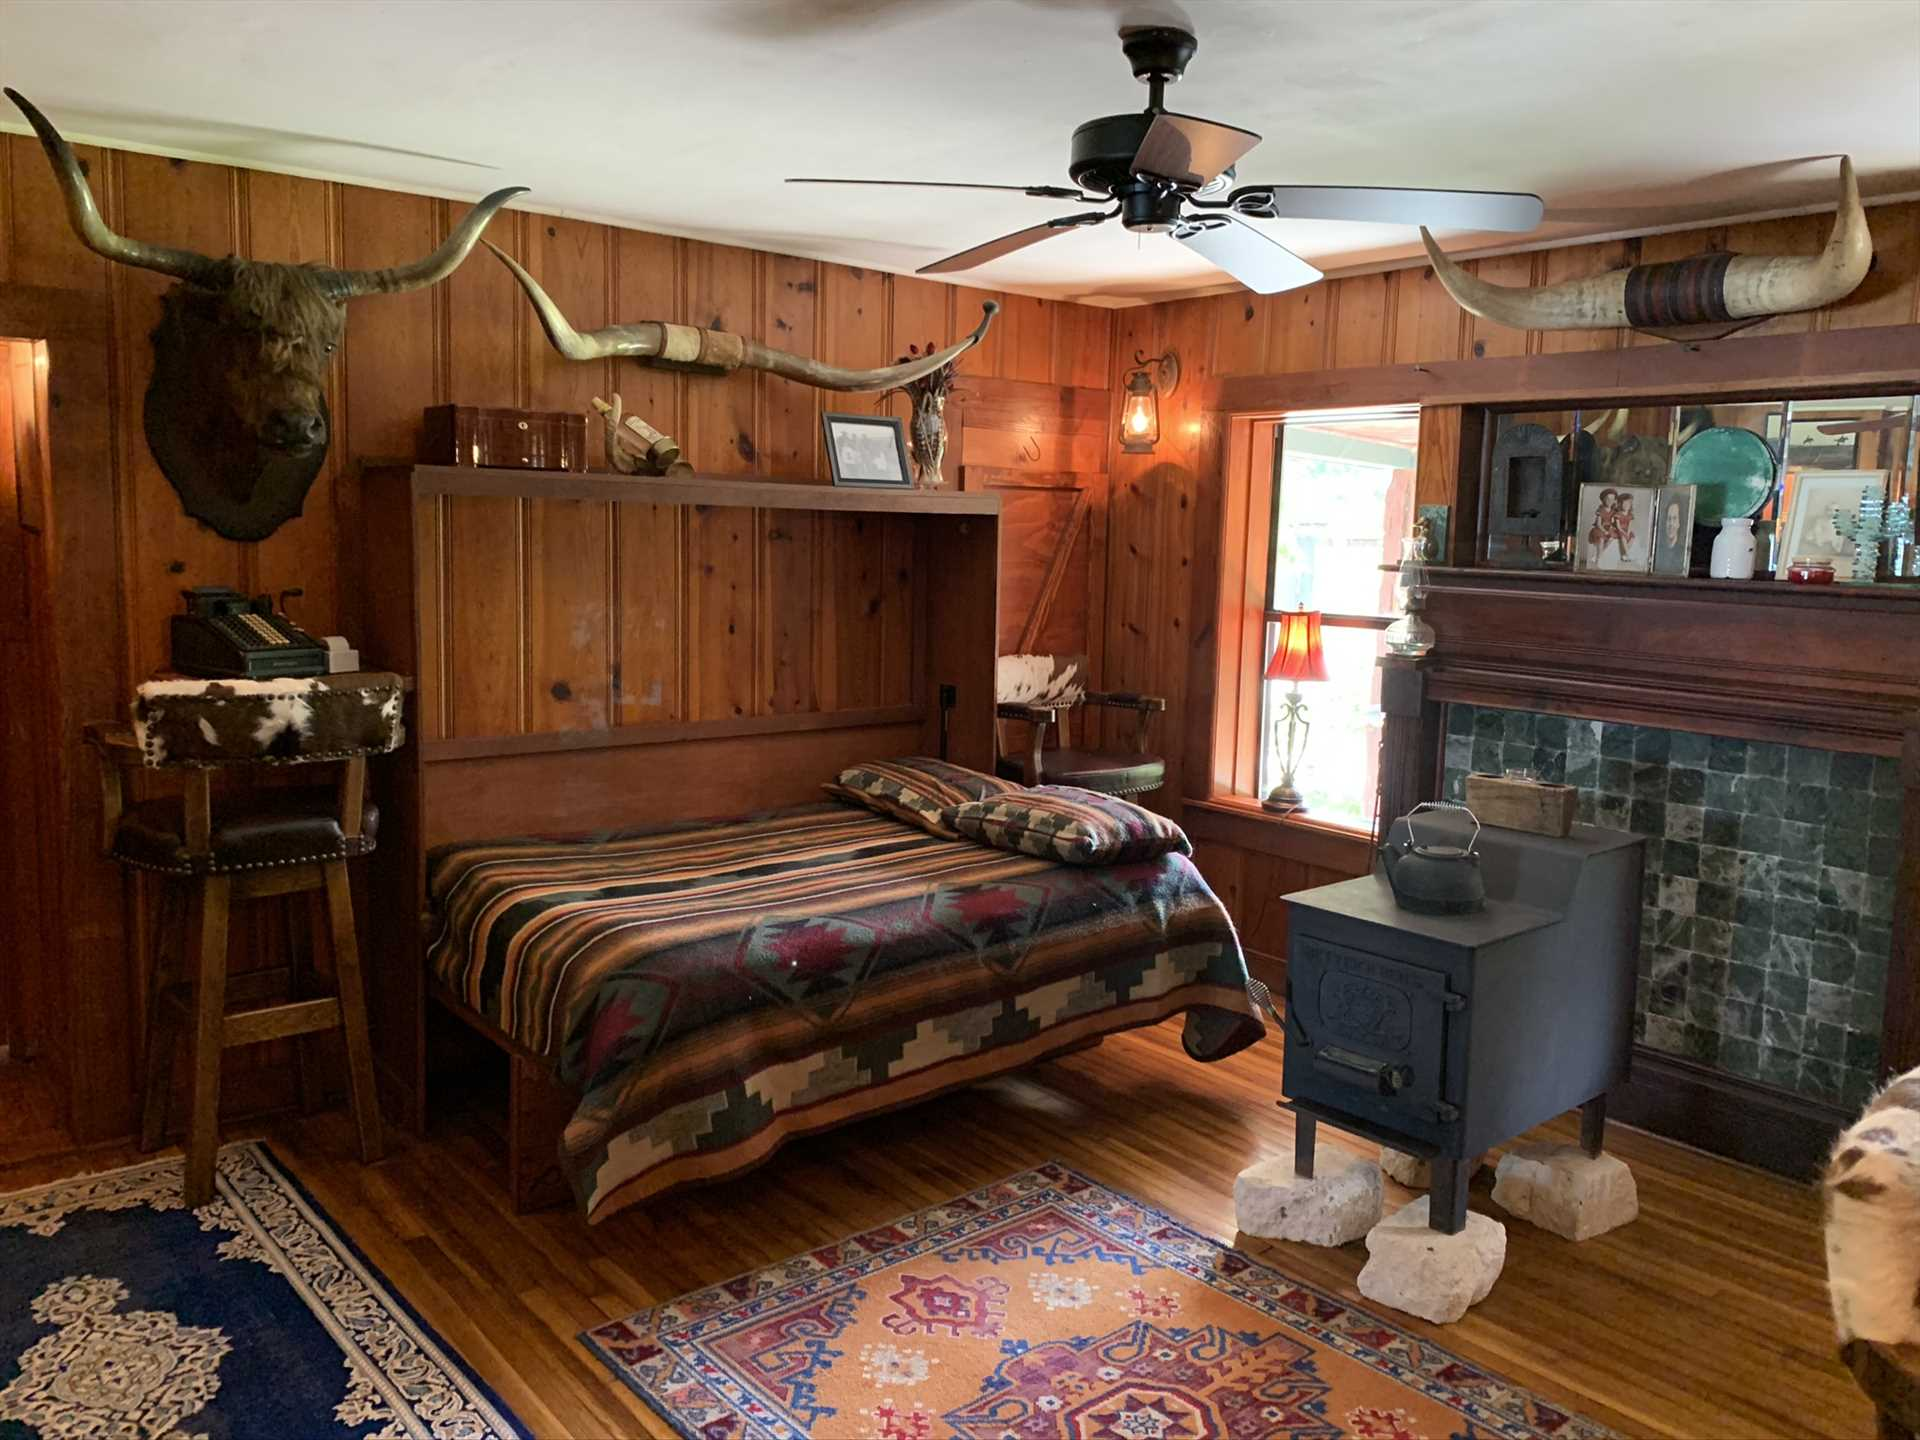 If the only Murphy beds you've seen were in the movies, you're in for a treat here! The third bedroom has two full-sized Murphy beds that fold neatly into the wall when not in use.